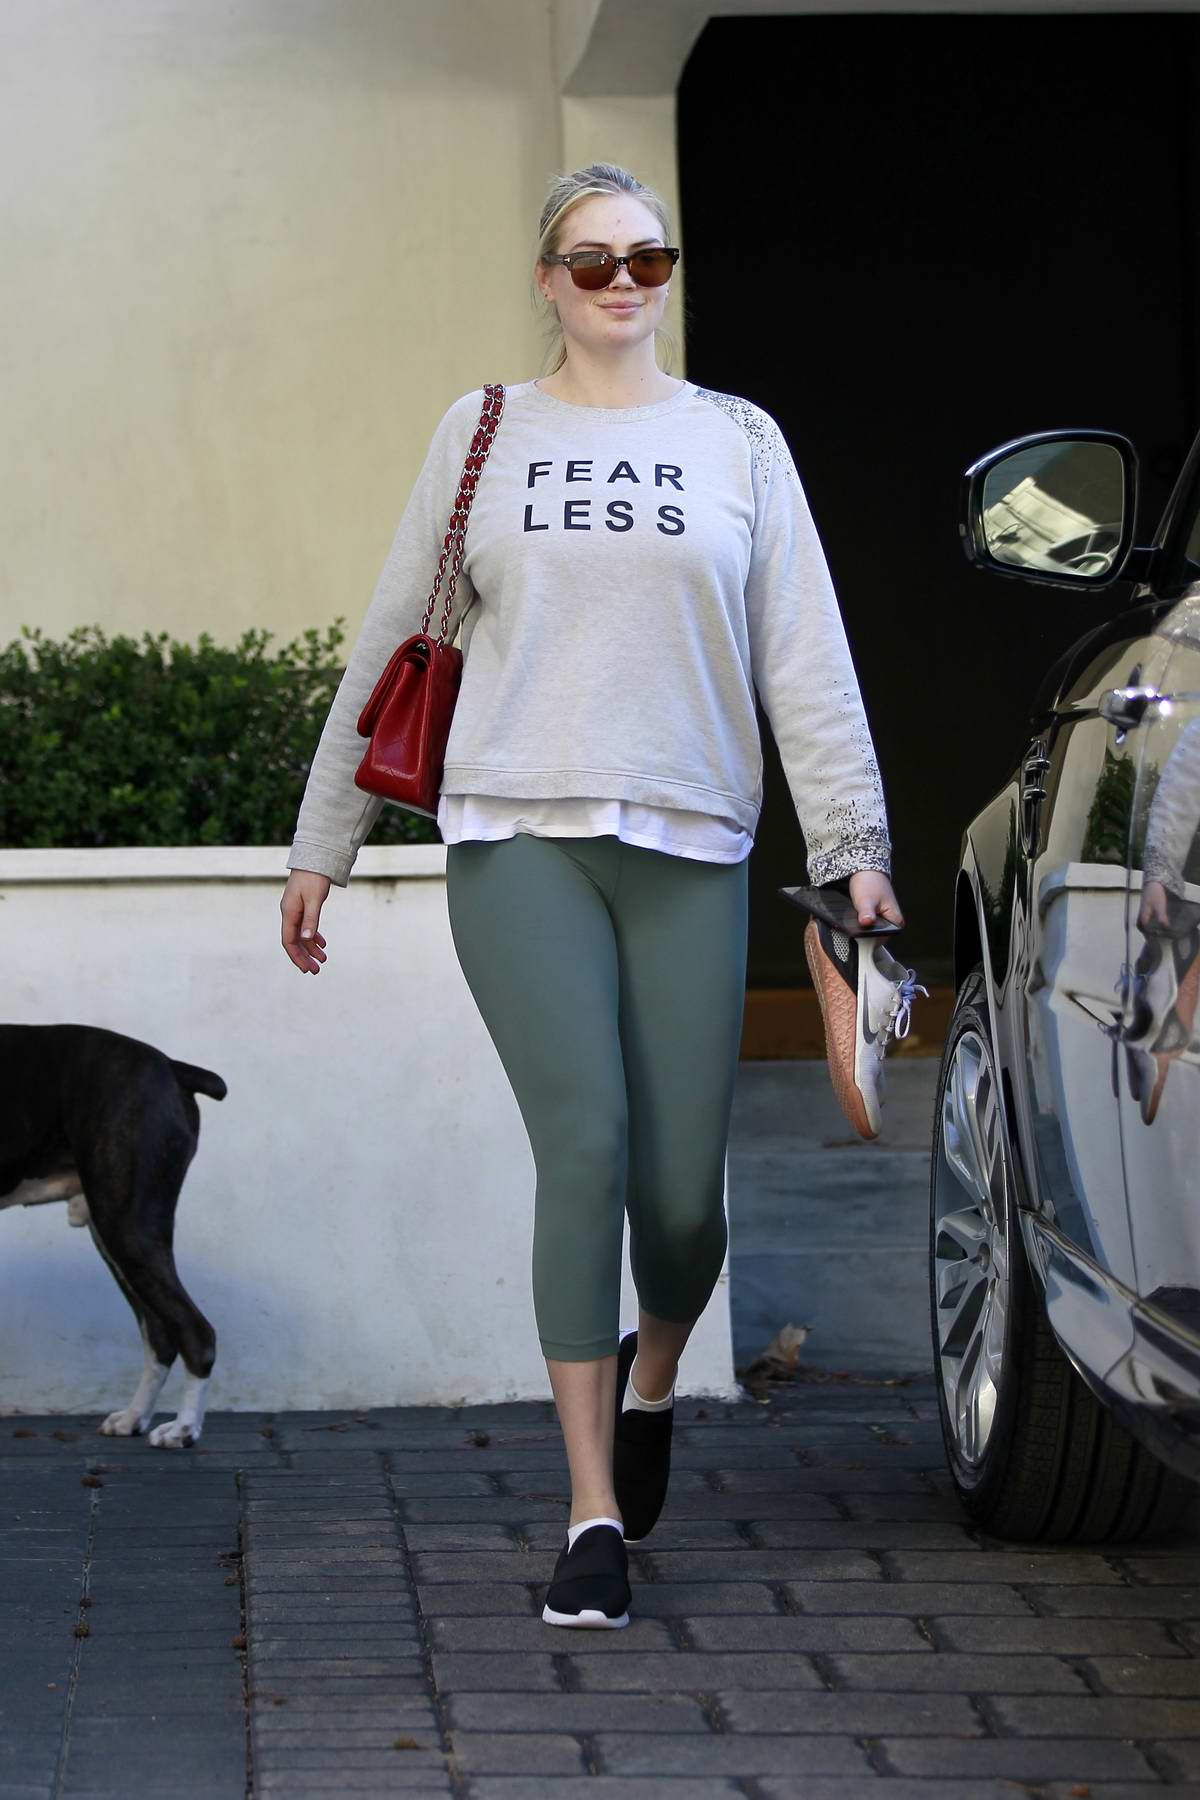 Kate Upton rocks 'FEARLESS' sweatshirt and green leggings as she leaves after her workout session in Los Angeles